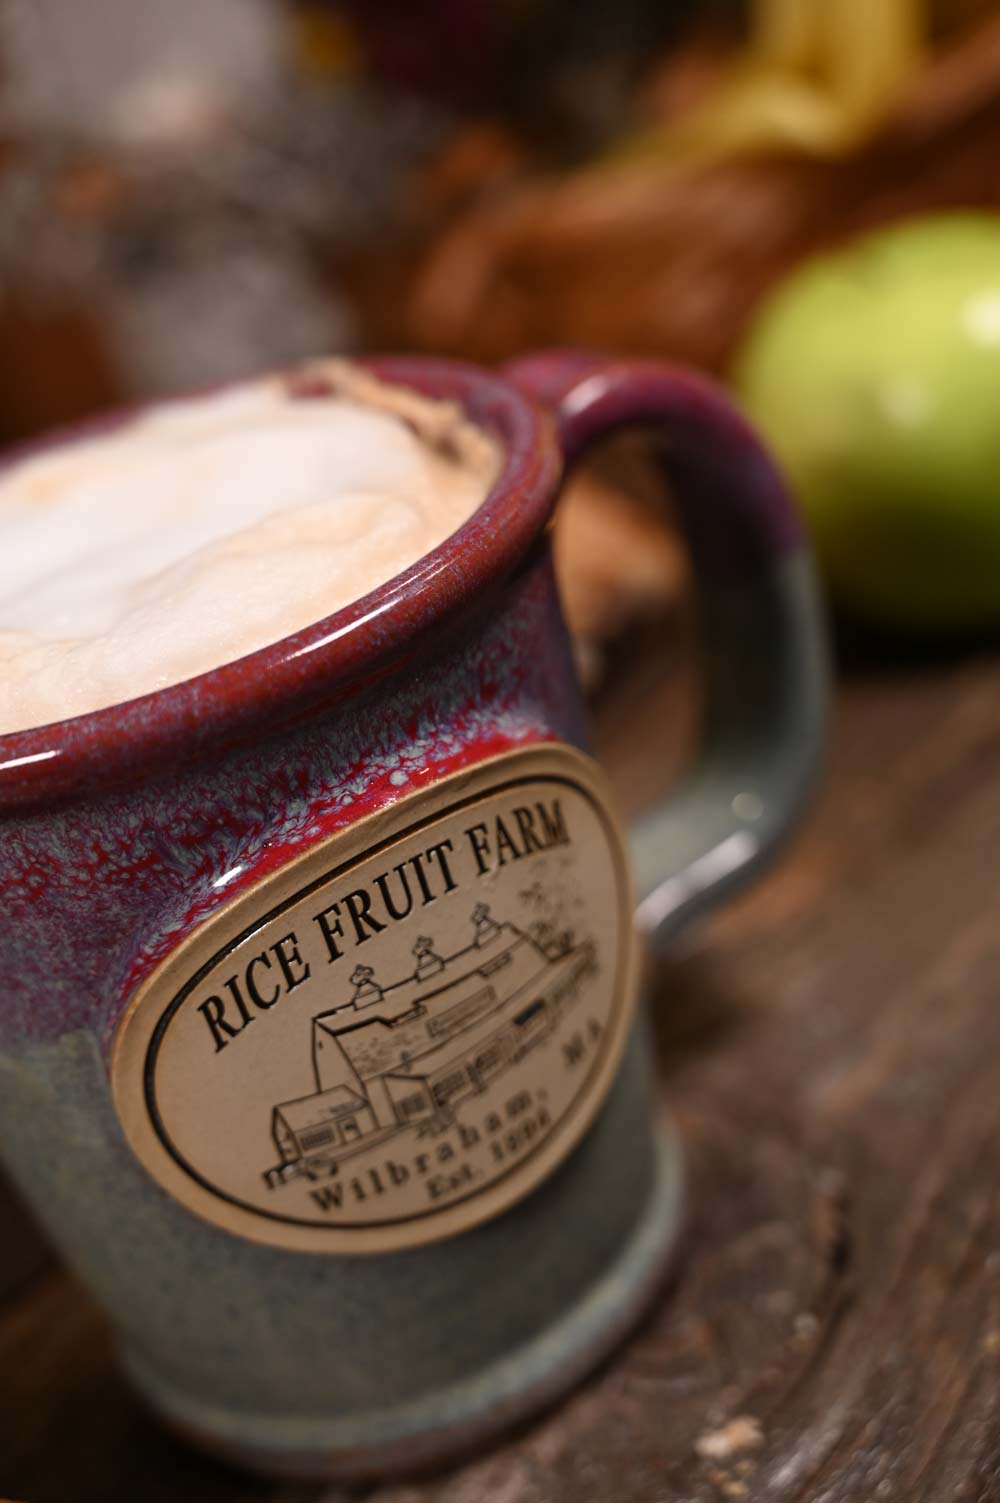 Rice Fruit Farm in Wilbraham, MA cup of craft coffee